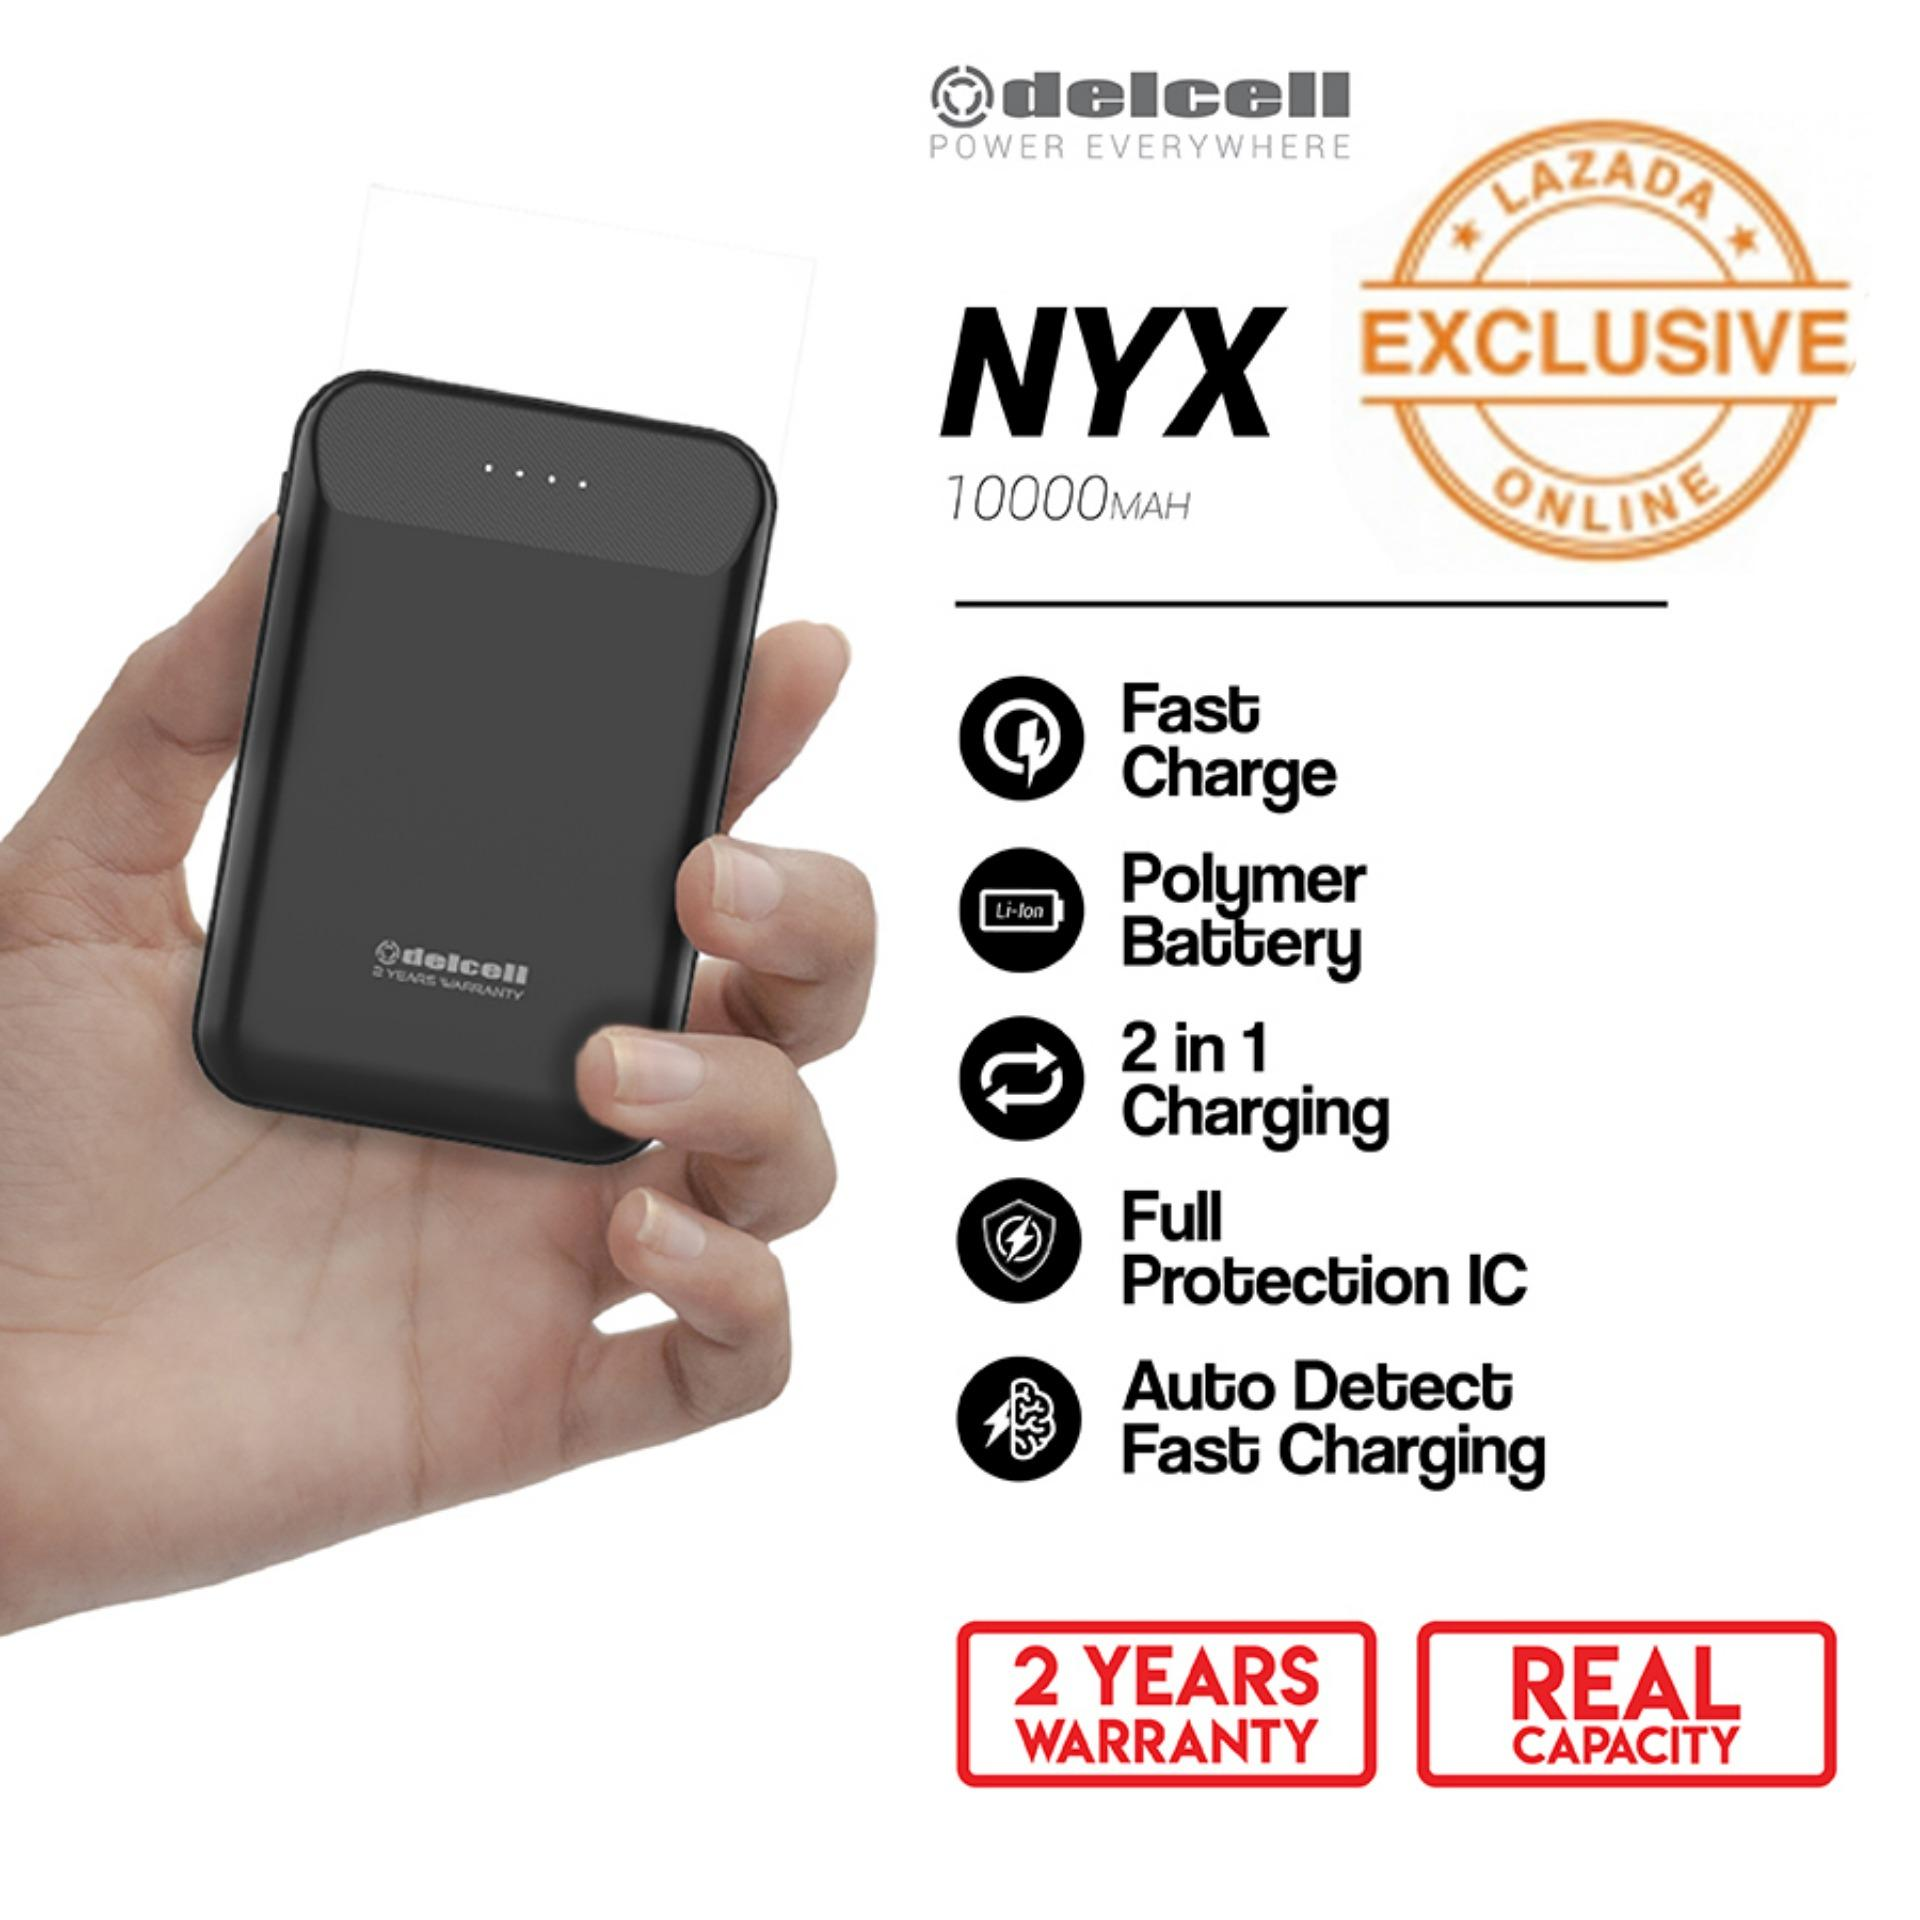 Delcell 10000mAh Powerbank NYX Real Capacity Fast Charging Small Powerbank Polymer Battery Dual Output Garansi Resmi